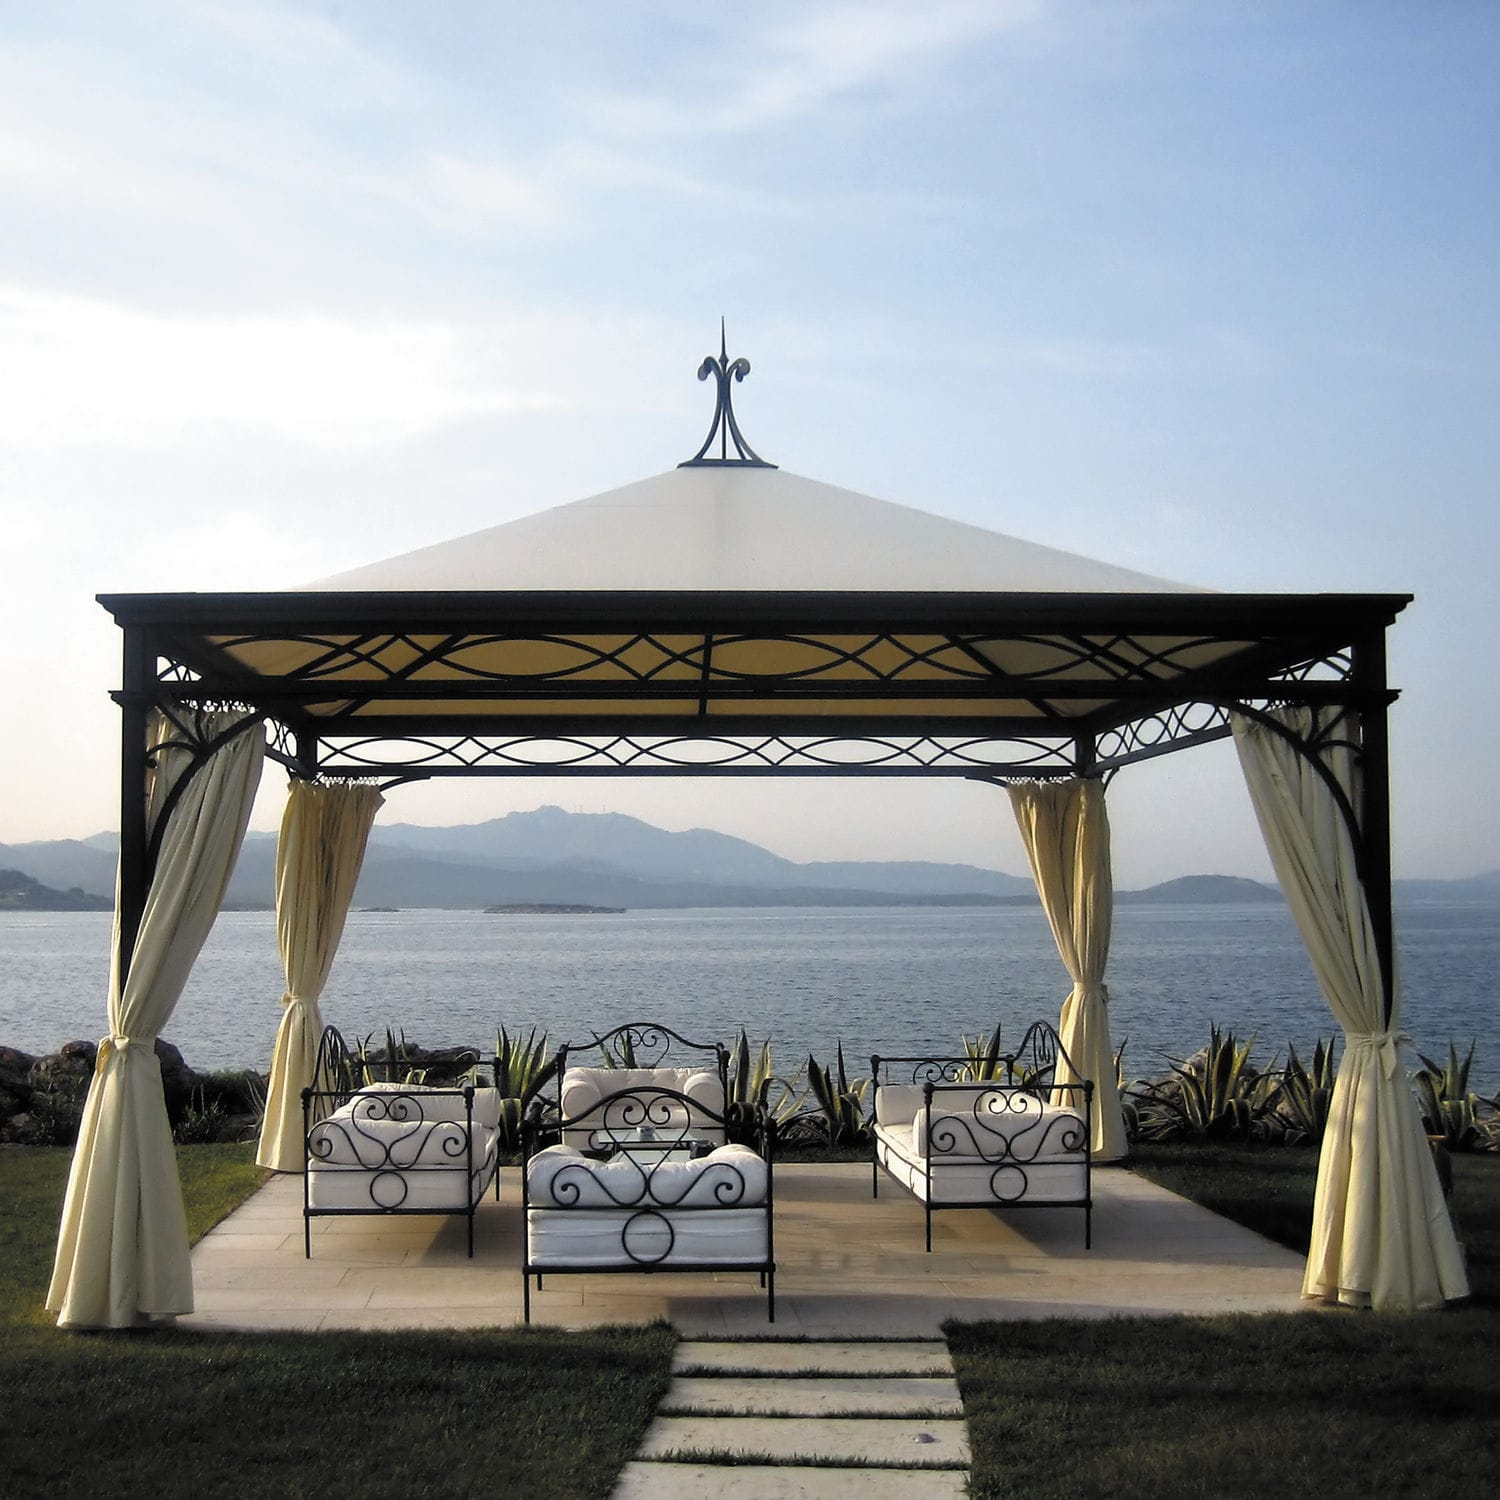 Wrought Iron Gazebo / Fabric Roof / Commercial / For Hotels   MALATESTA